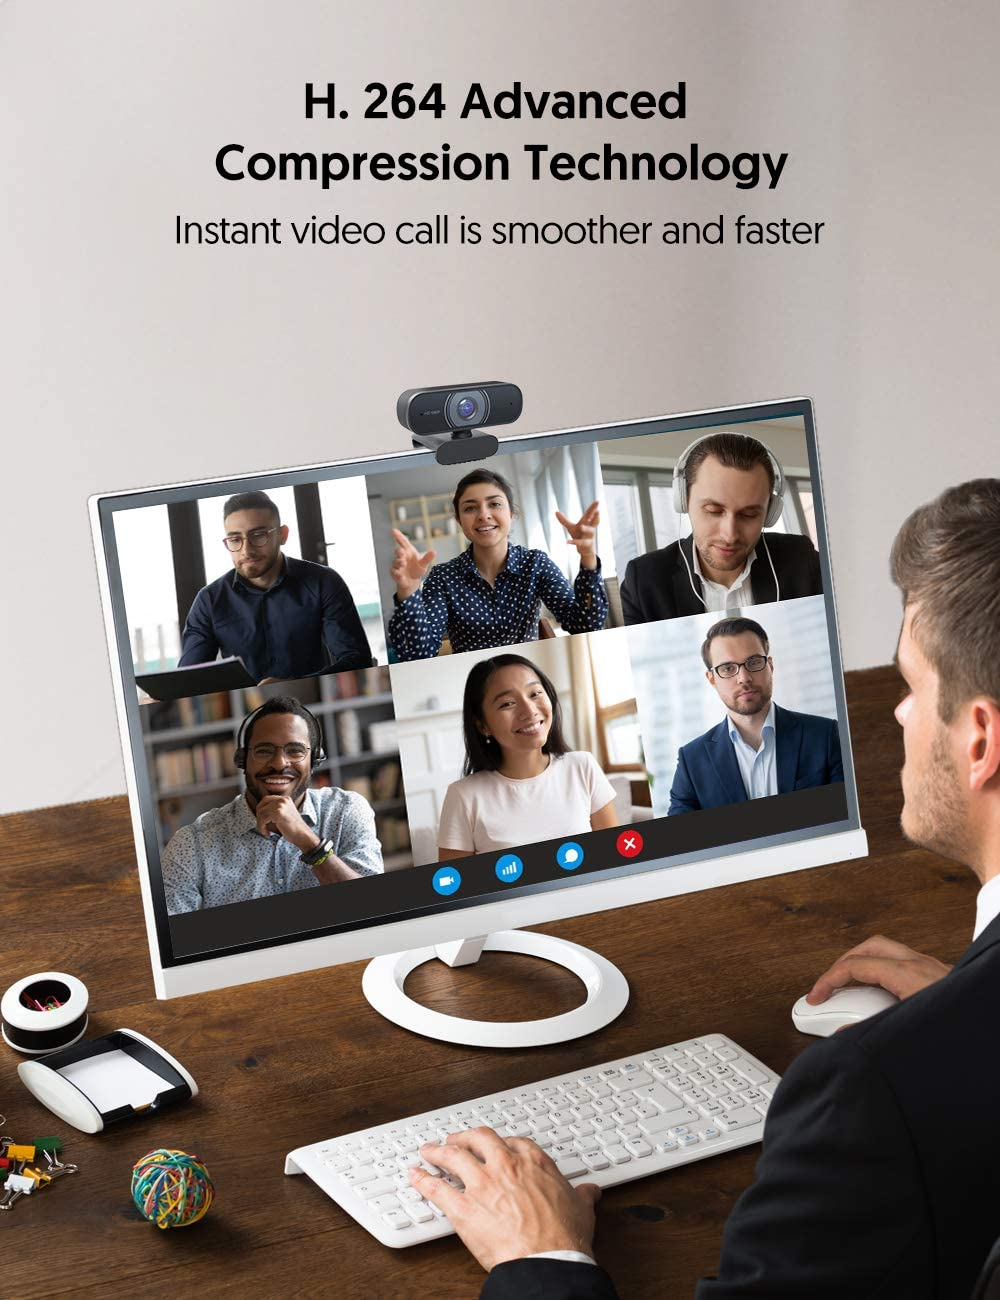 Video Calling WebEx Victure Webcam with Dual Microphones MAC Studying Desktop /& Laptop Plug and Play USB Camera for YouTube 1080P Full HD Streaming Webcam for PC Skype Conferencing